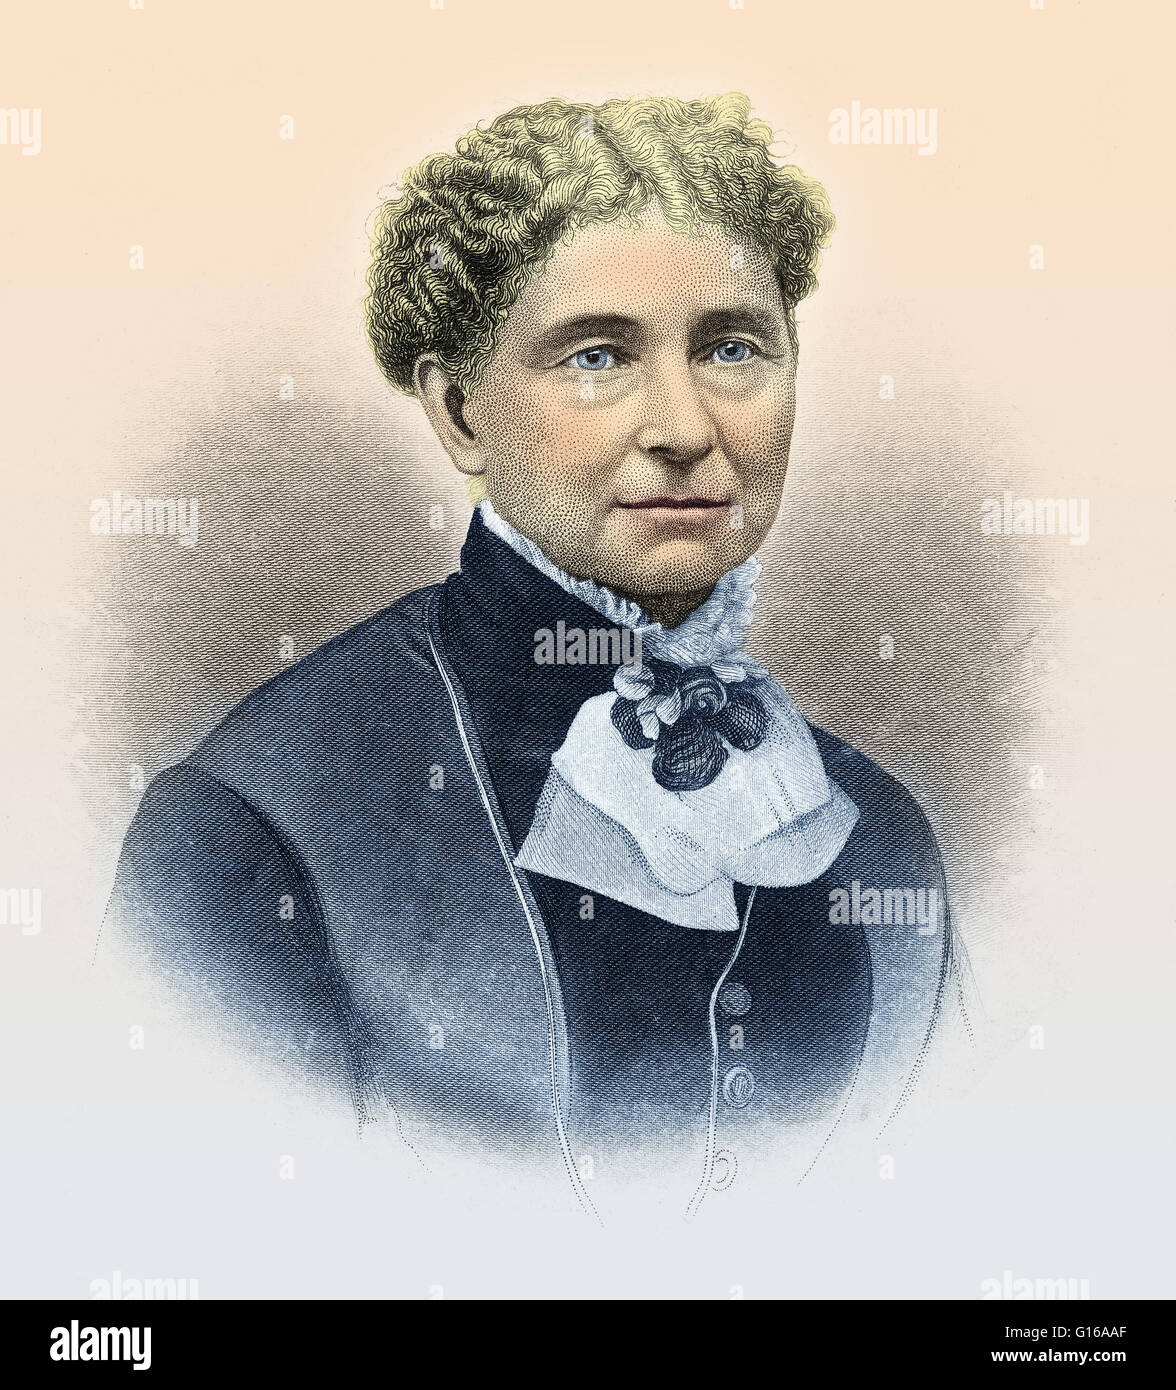 Amelia Jenks Bloomer (May 27, 1818 - December 30, 1894) was an American women's rights and temperance advocate. - Stock Image